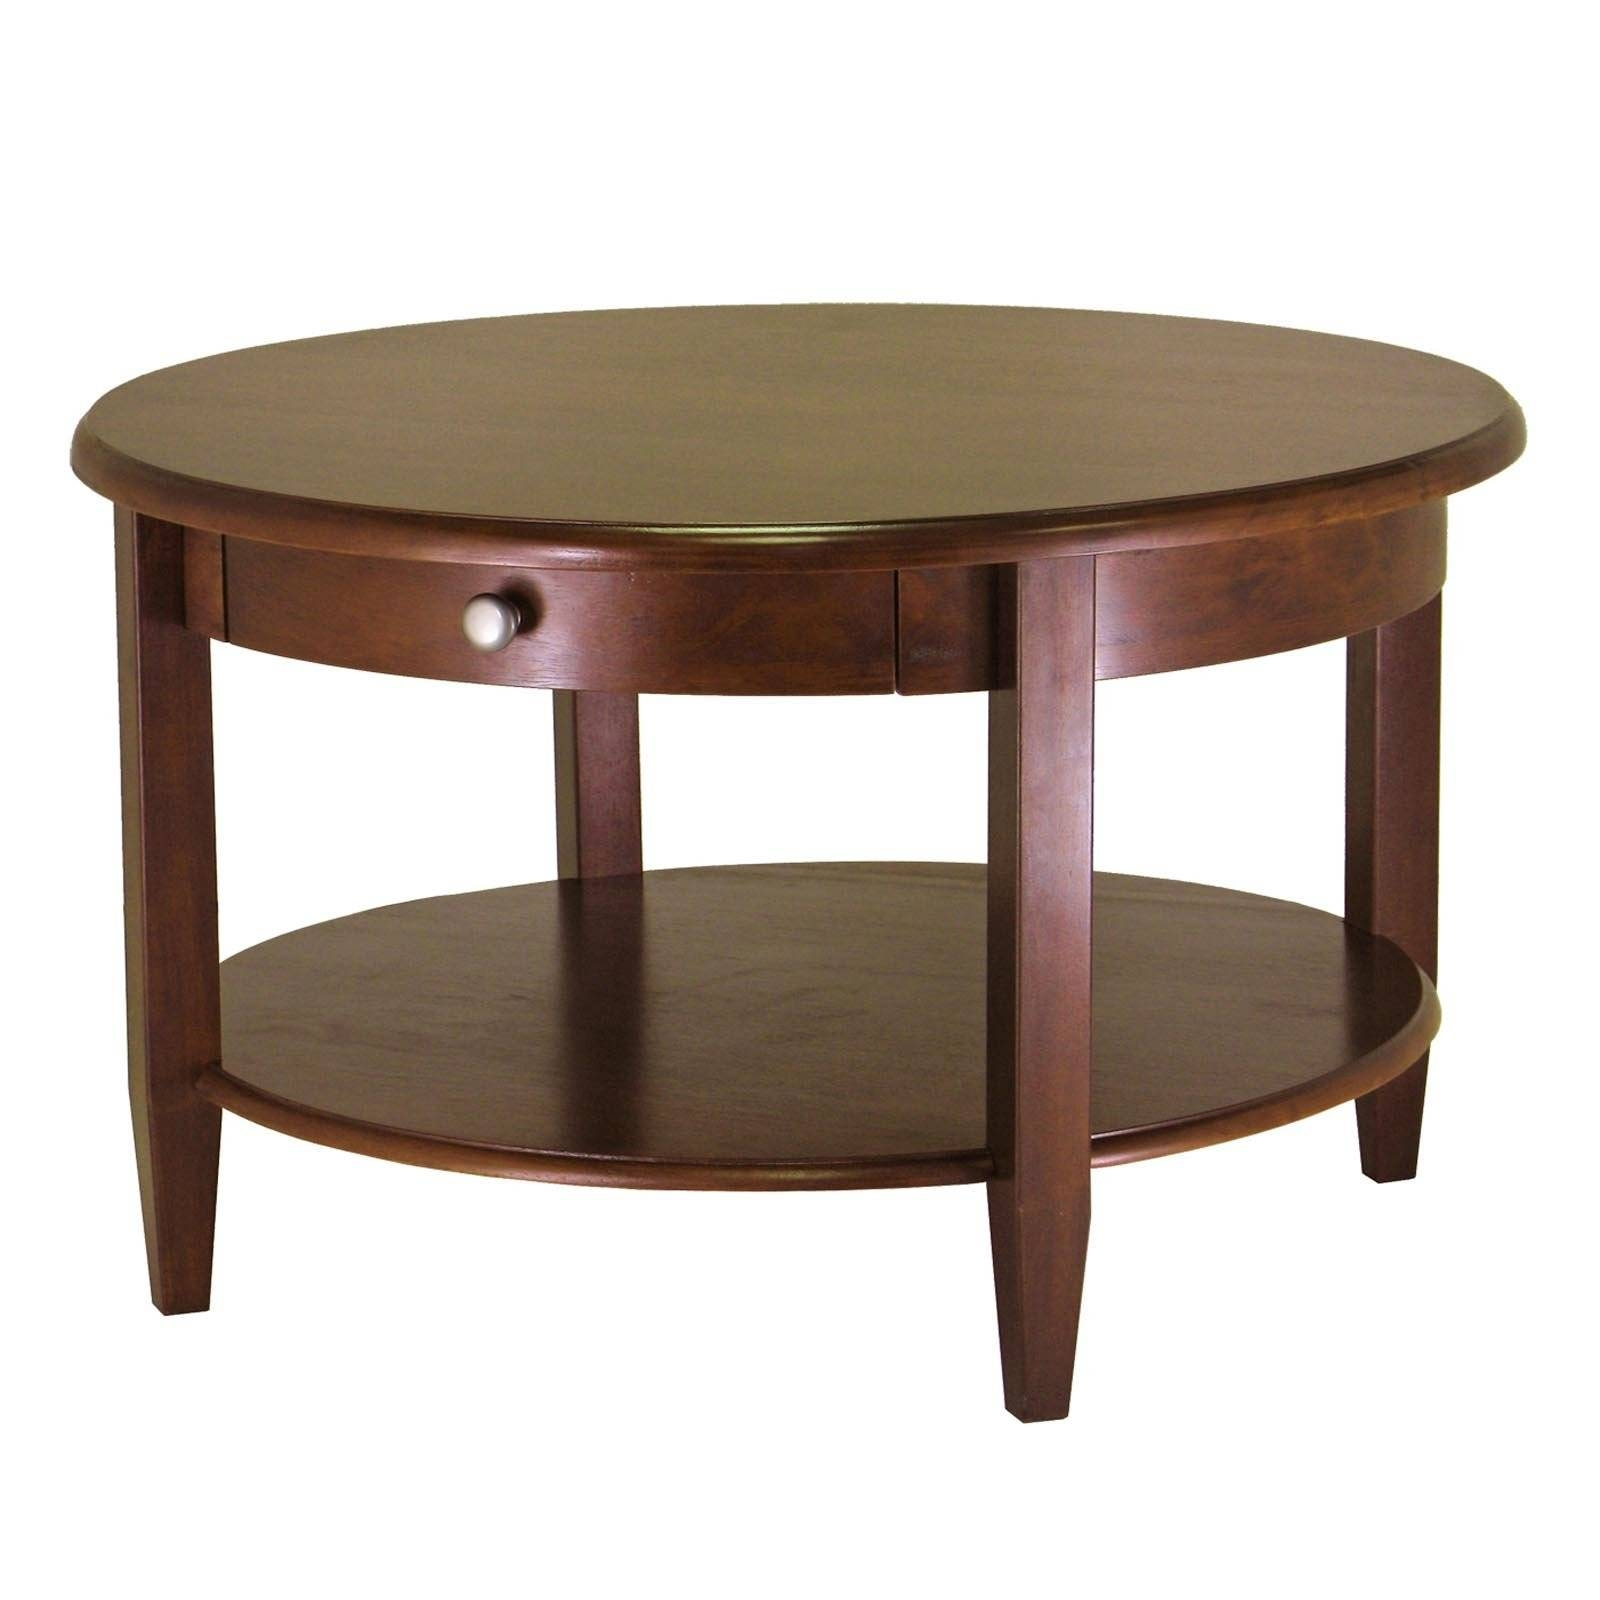 Elegant Stylish Round Coffee Table With Storage Dark Brown Finish throughout Coffee Tables With Shelves (Image 15 of 30)